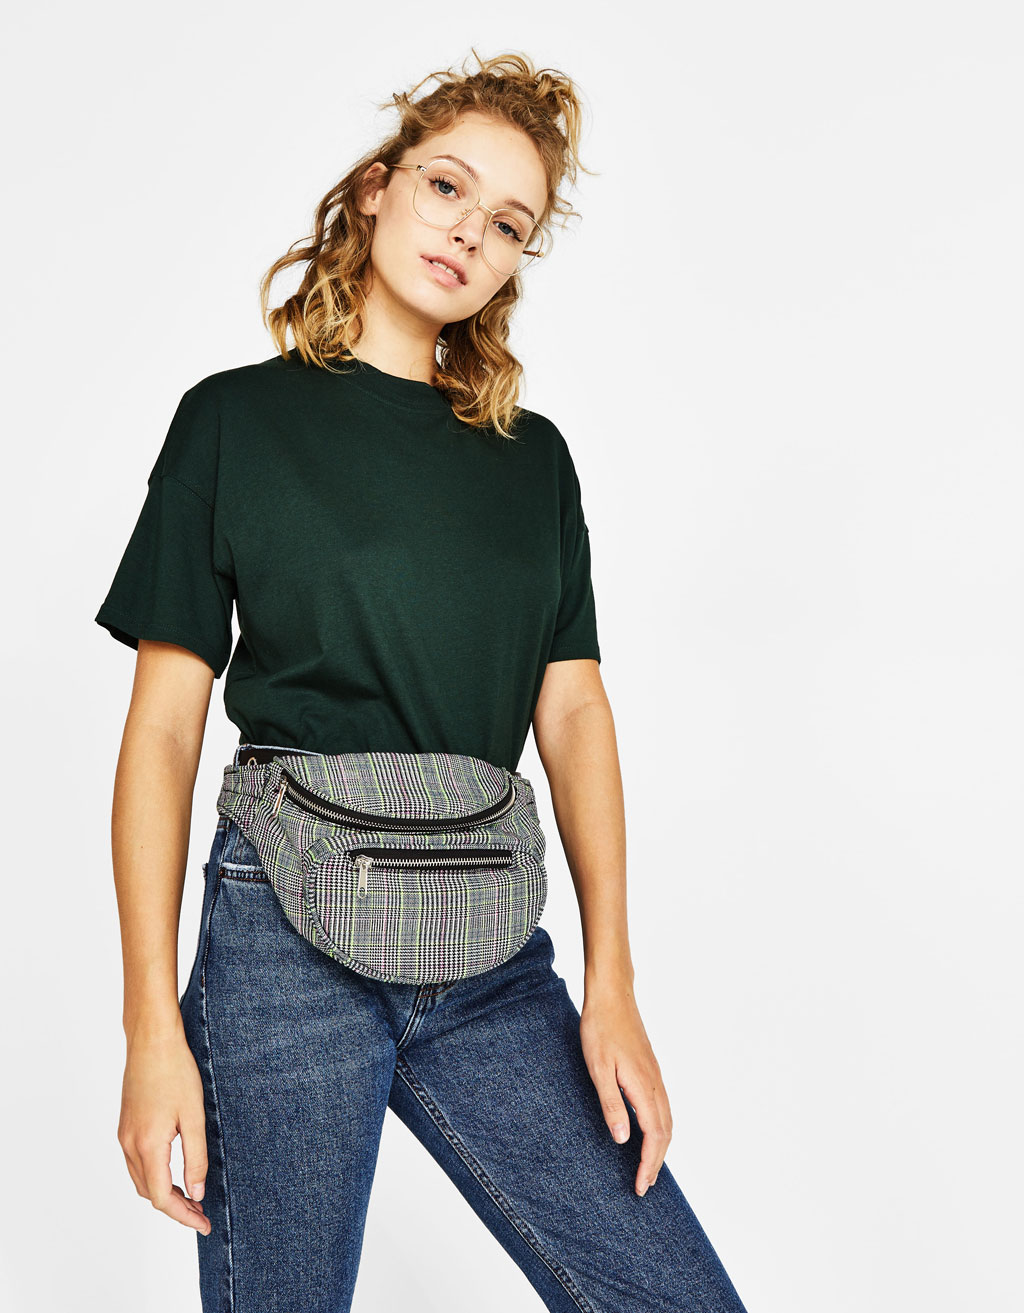 Plaid fanny pack